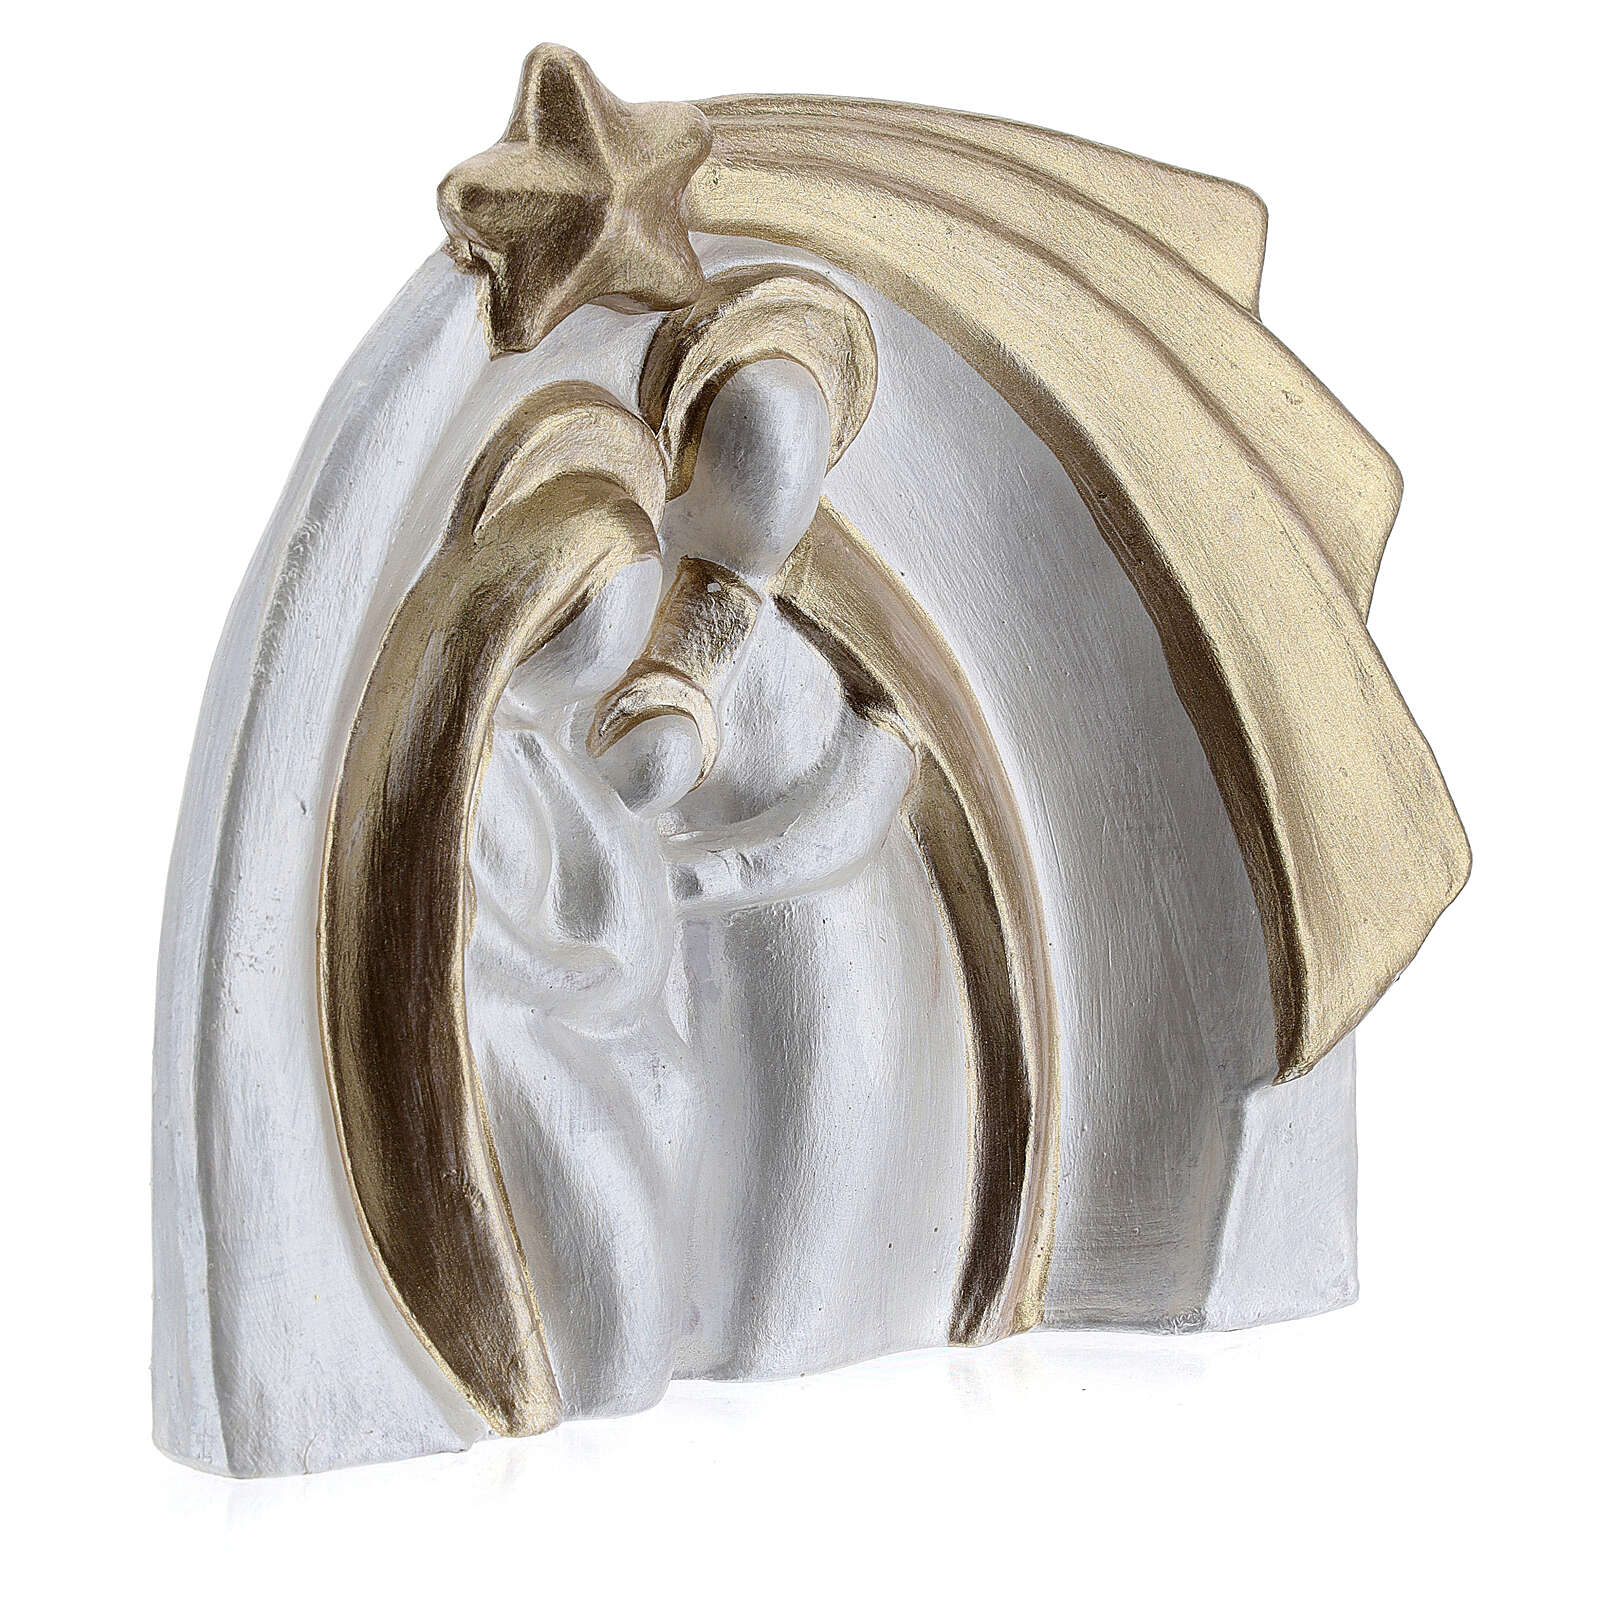 White terracotta stable with Comet gold star Deruta 14x16 cm 4